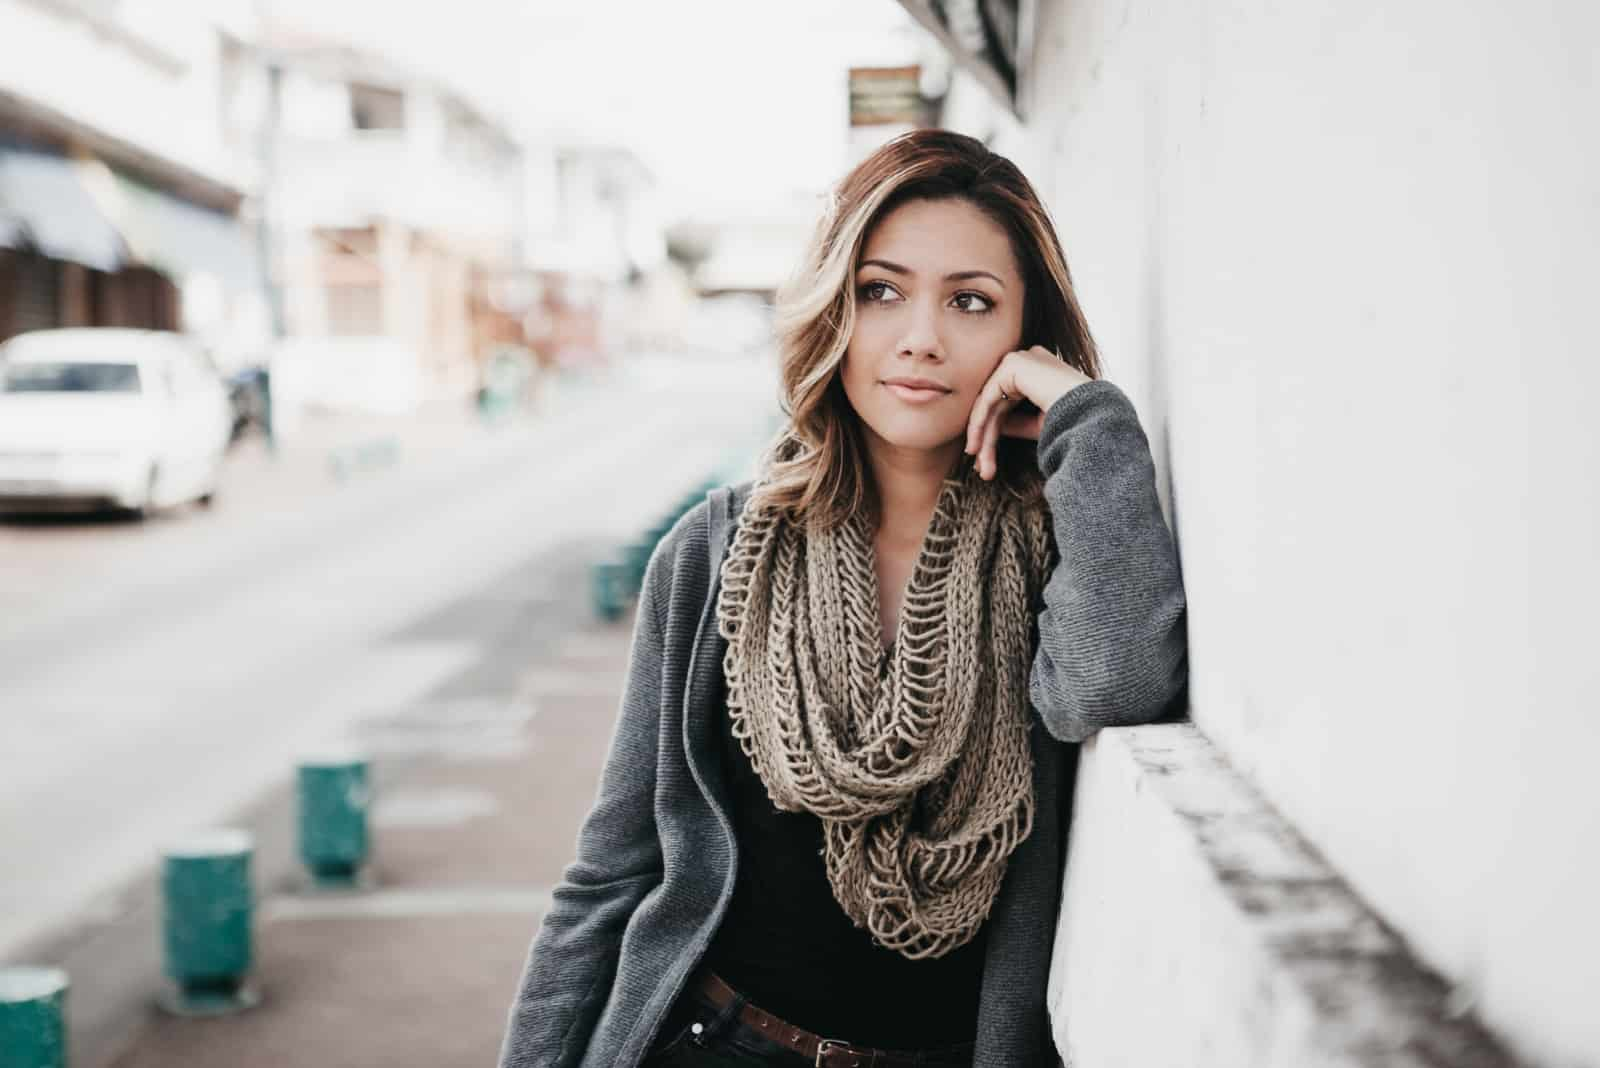 pensive woman with gray scarf leaning on wall